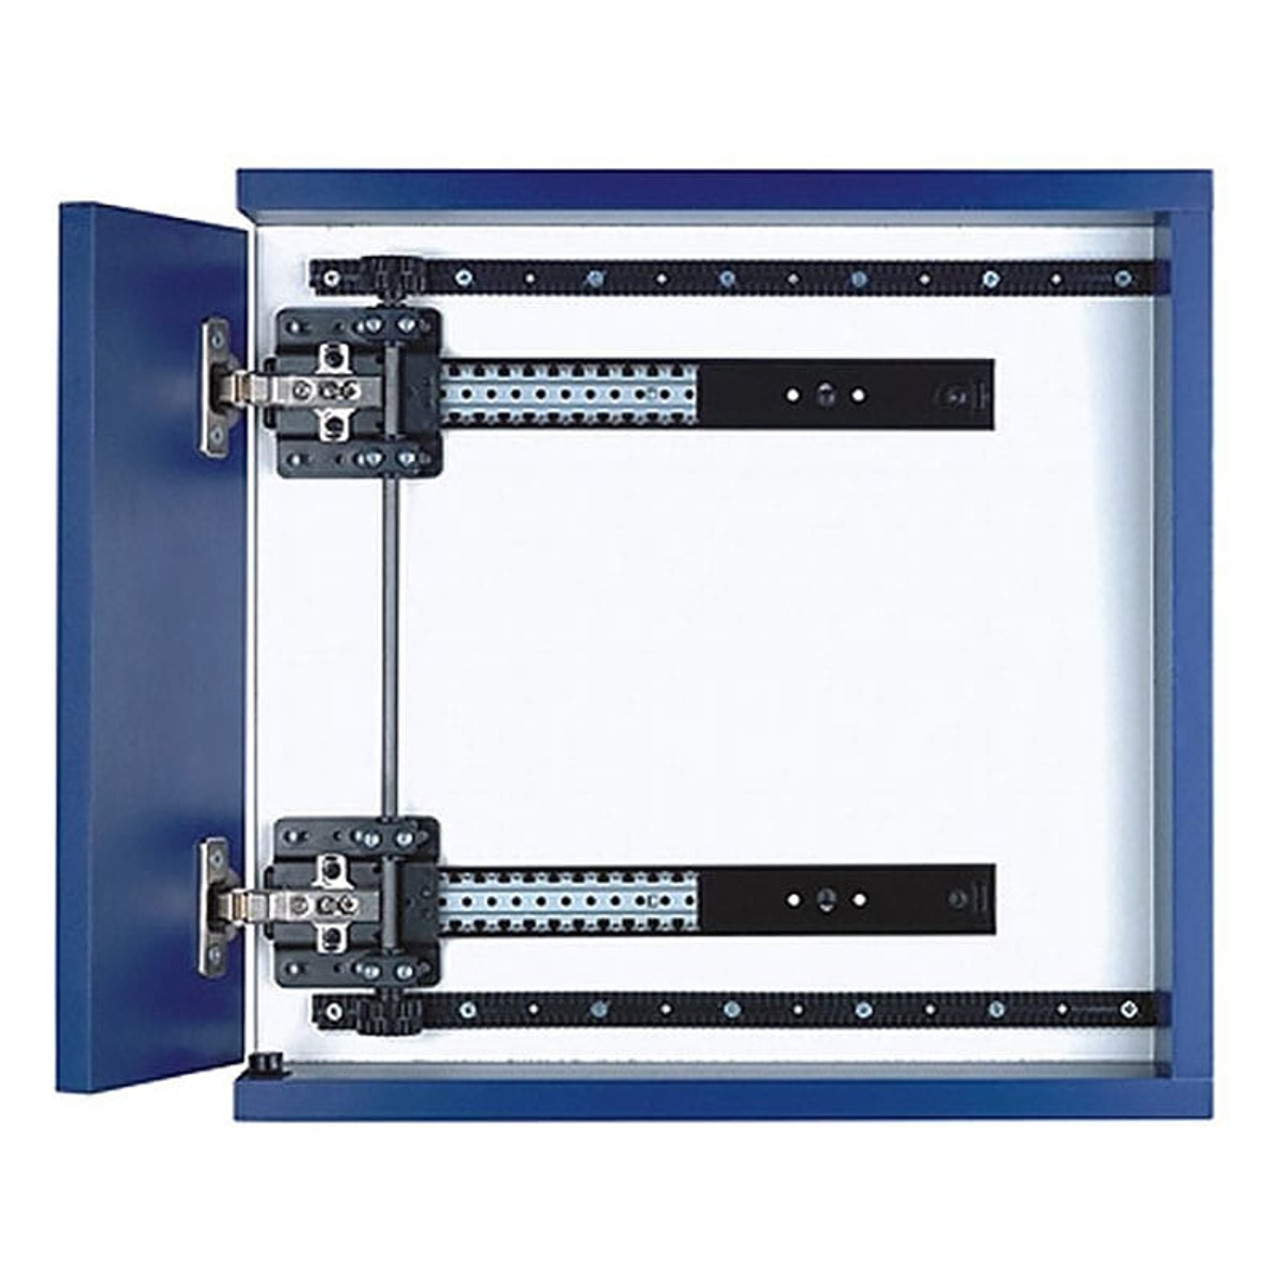 Hafele RP 42 Pocket Door Slide System Set   Image 1 ...